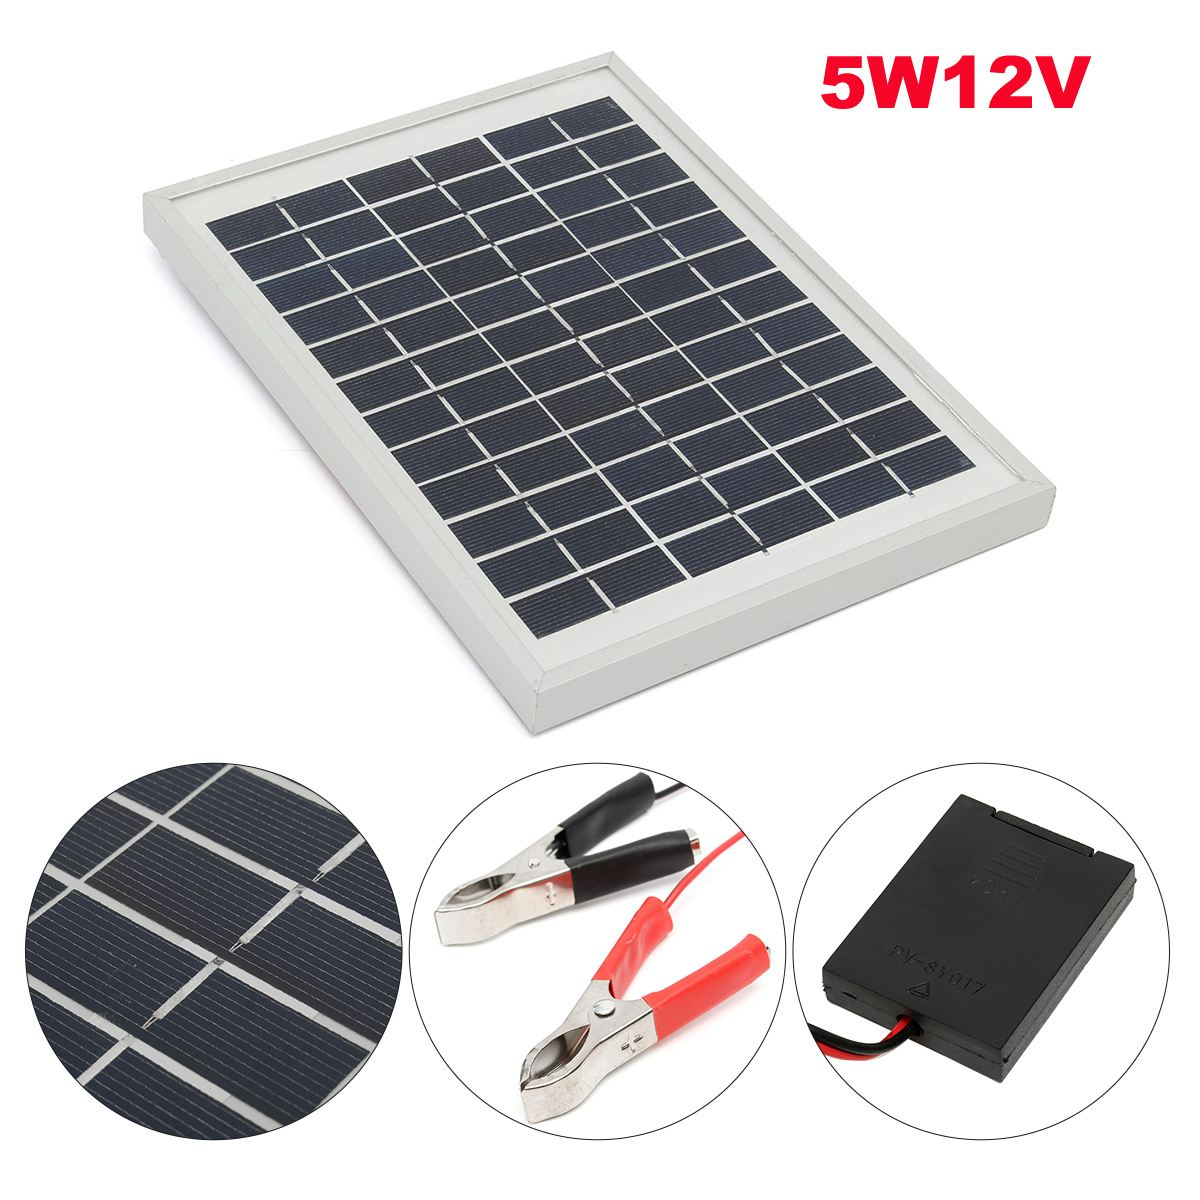 KINCO 12V 5W Solar Panel Charger PolyCrystalline Cells DIY Car Phone Battery Charger With 10A 12/24V Solar Controller high quality 18v 2 5w polycrystalline stored energy power solar panel module system solar cells charger 19 4x12x0 3cm